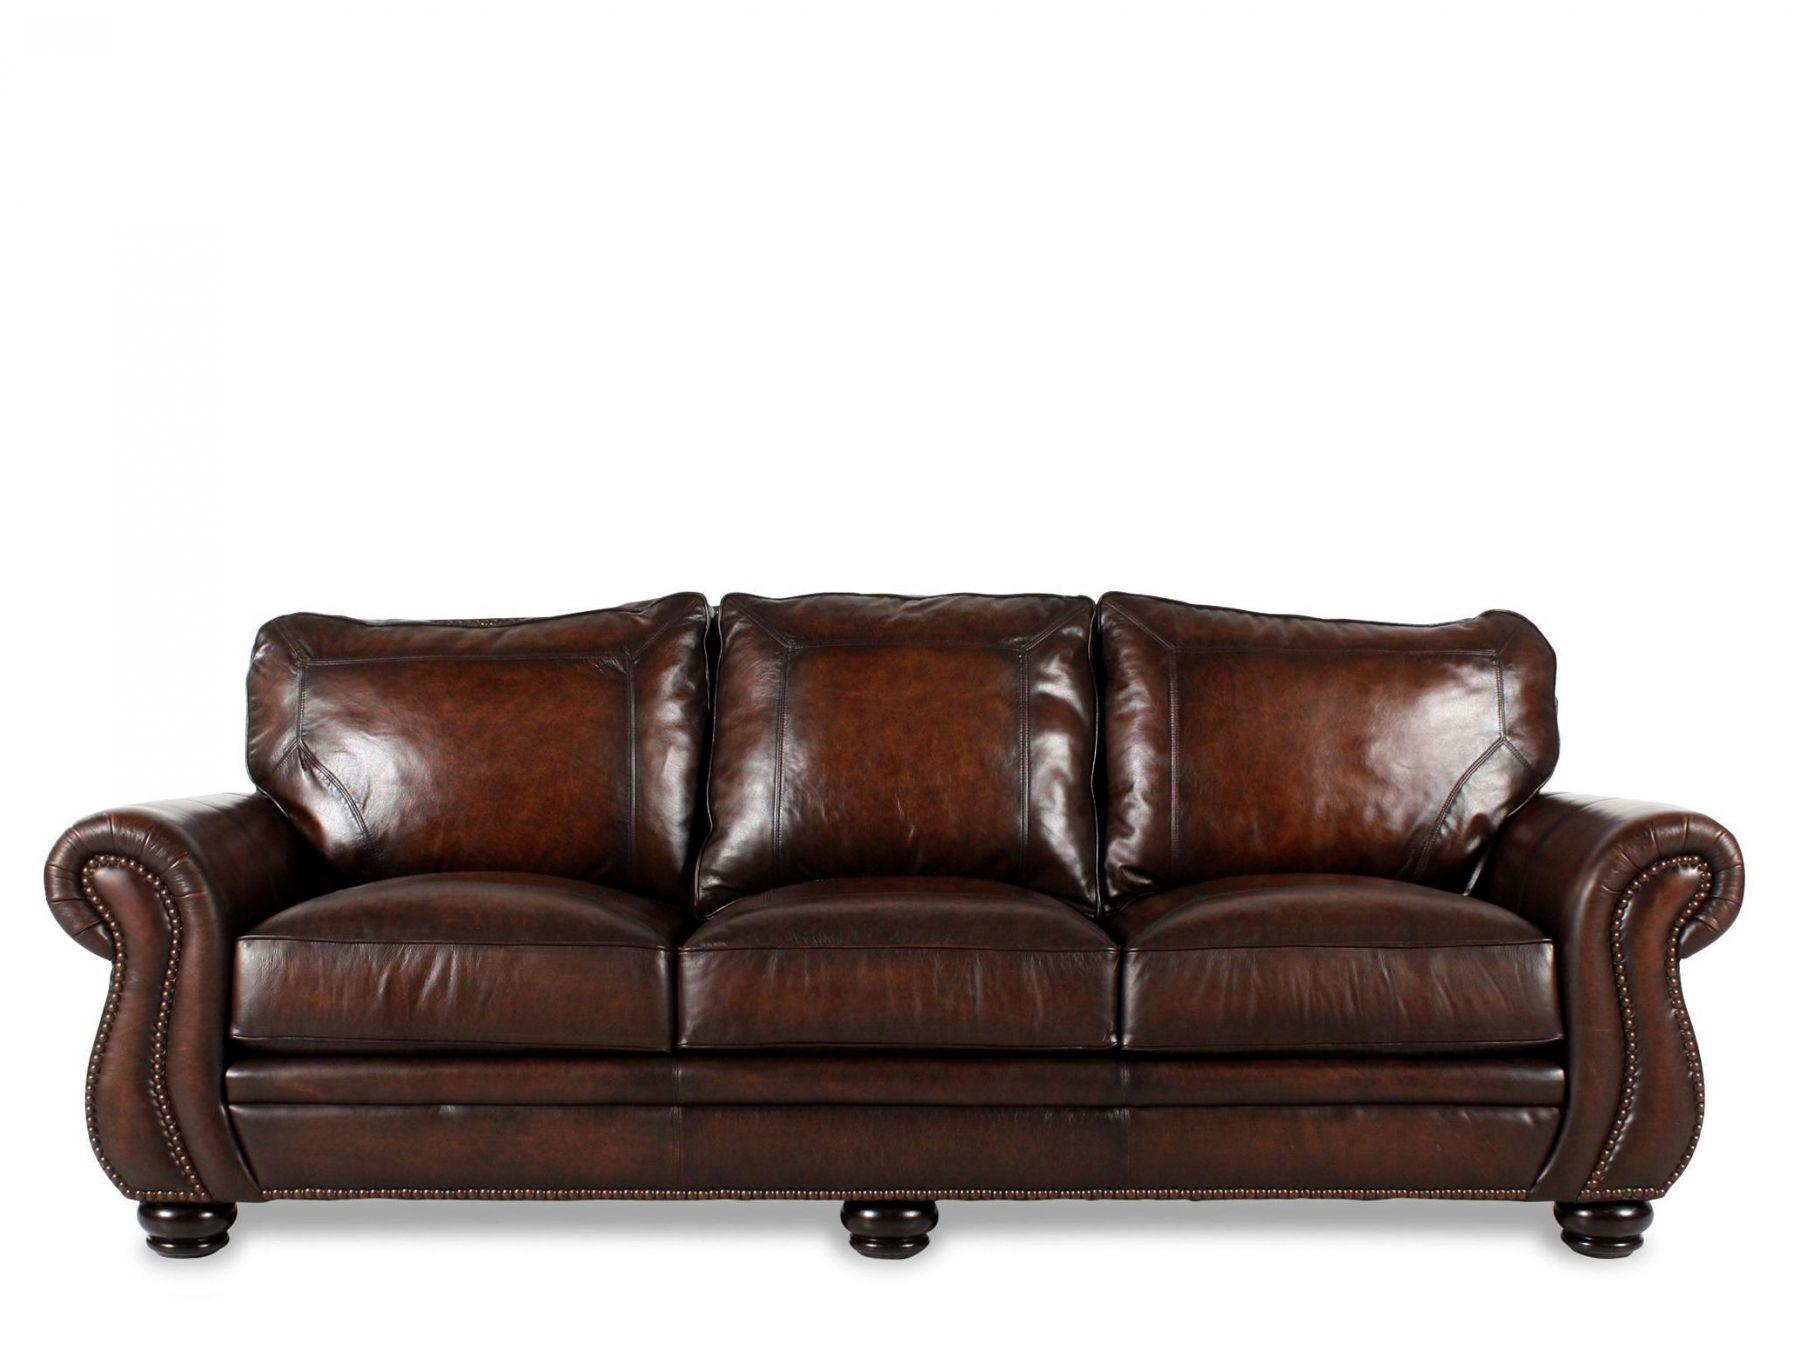 Bernhardt Leather Chair Bernhardt Leather Sofa Mathis Brothers